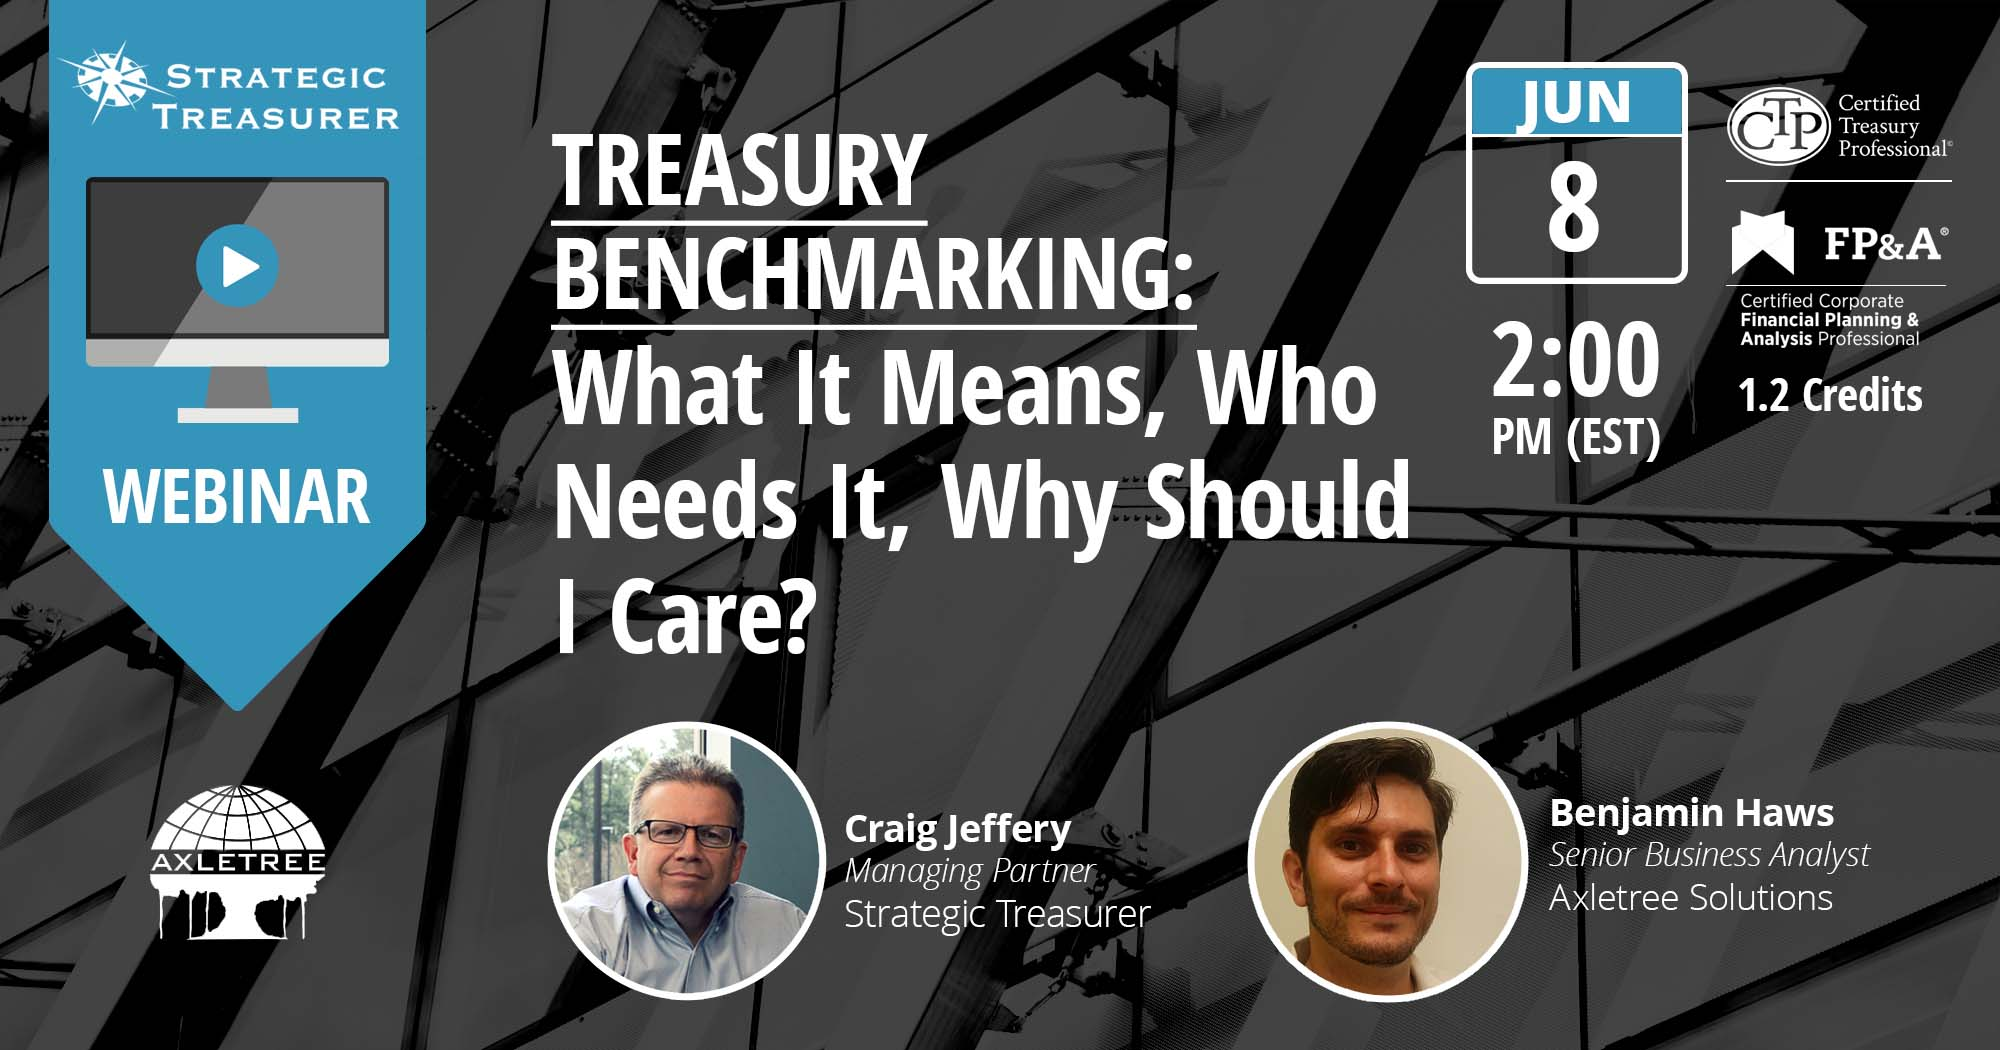 Treasury Benchmarking: What It Means, Who Needs It, Why Should I Care?